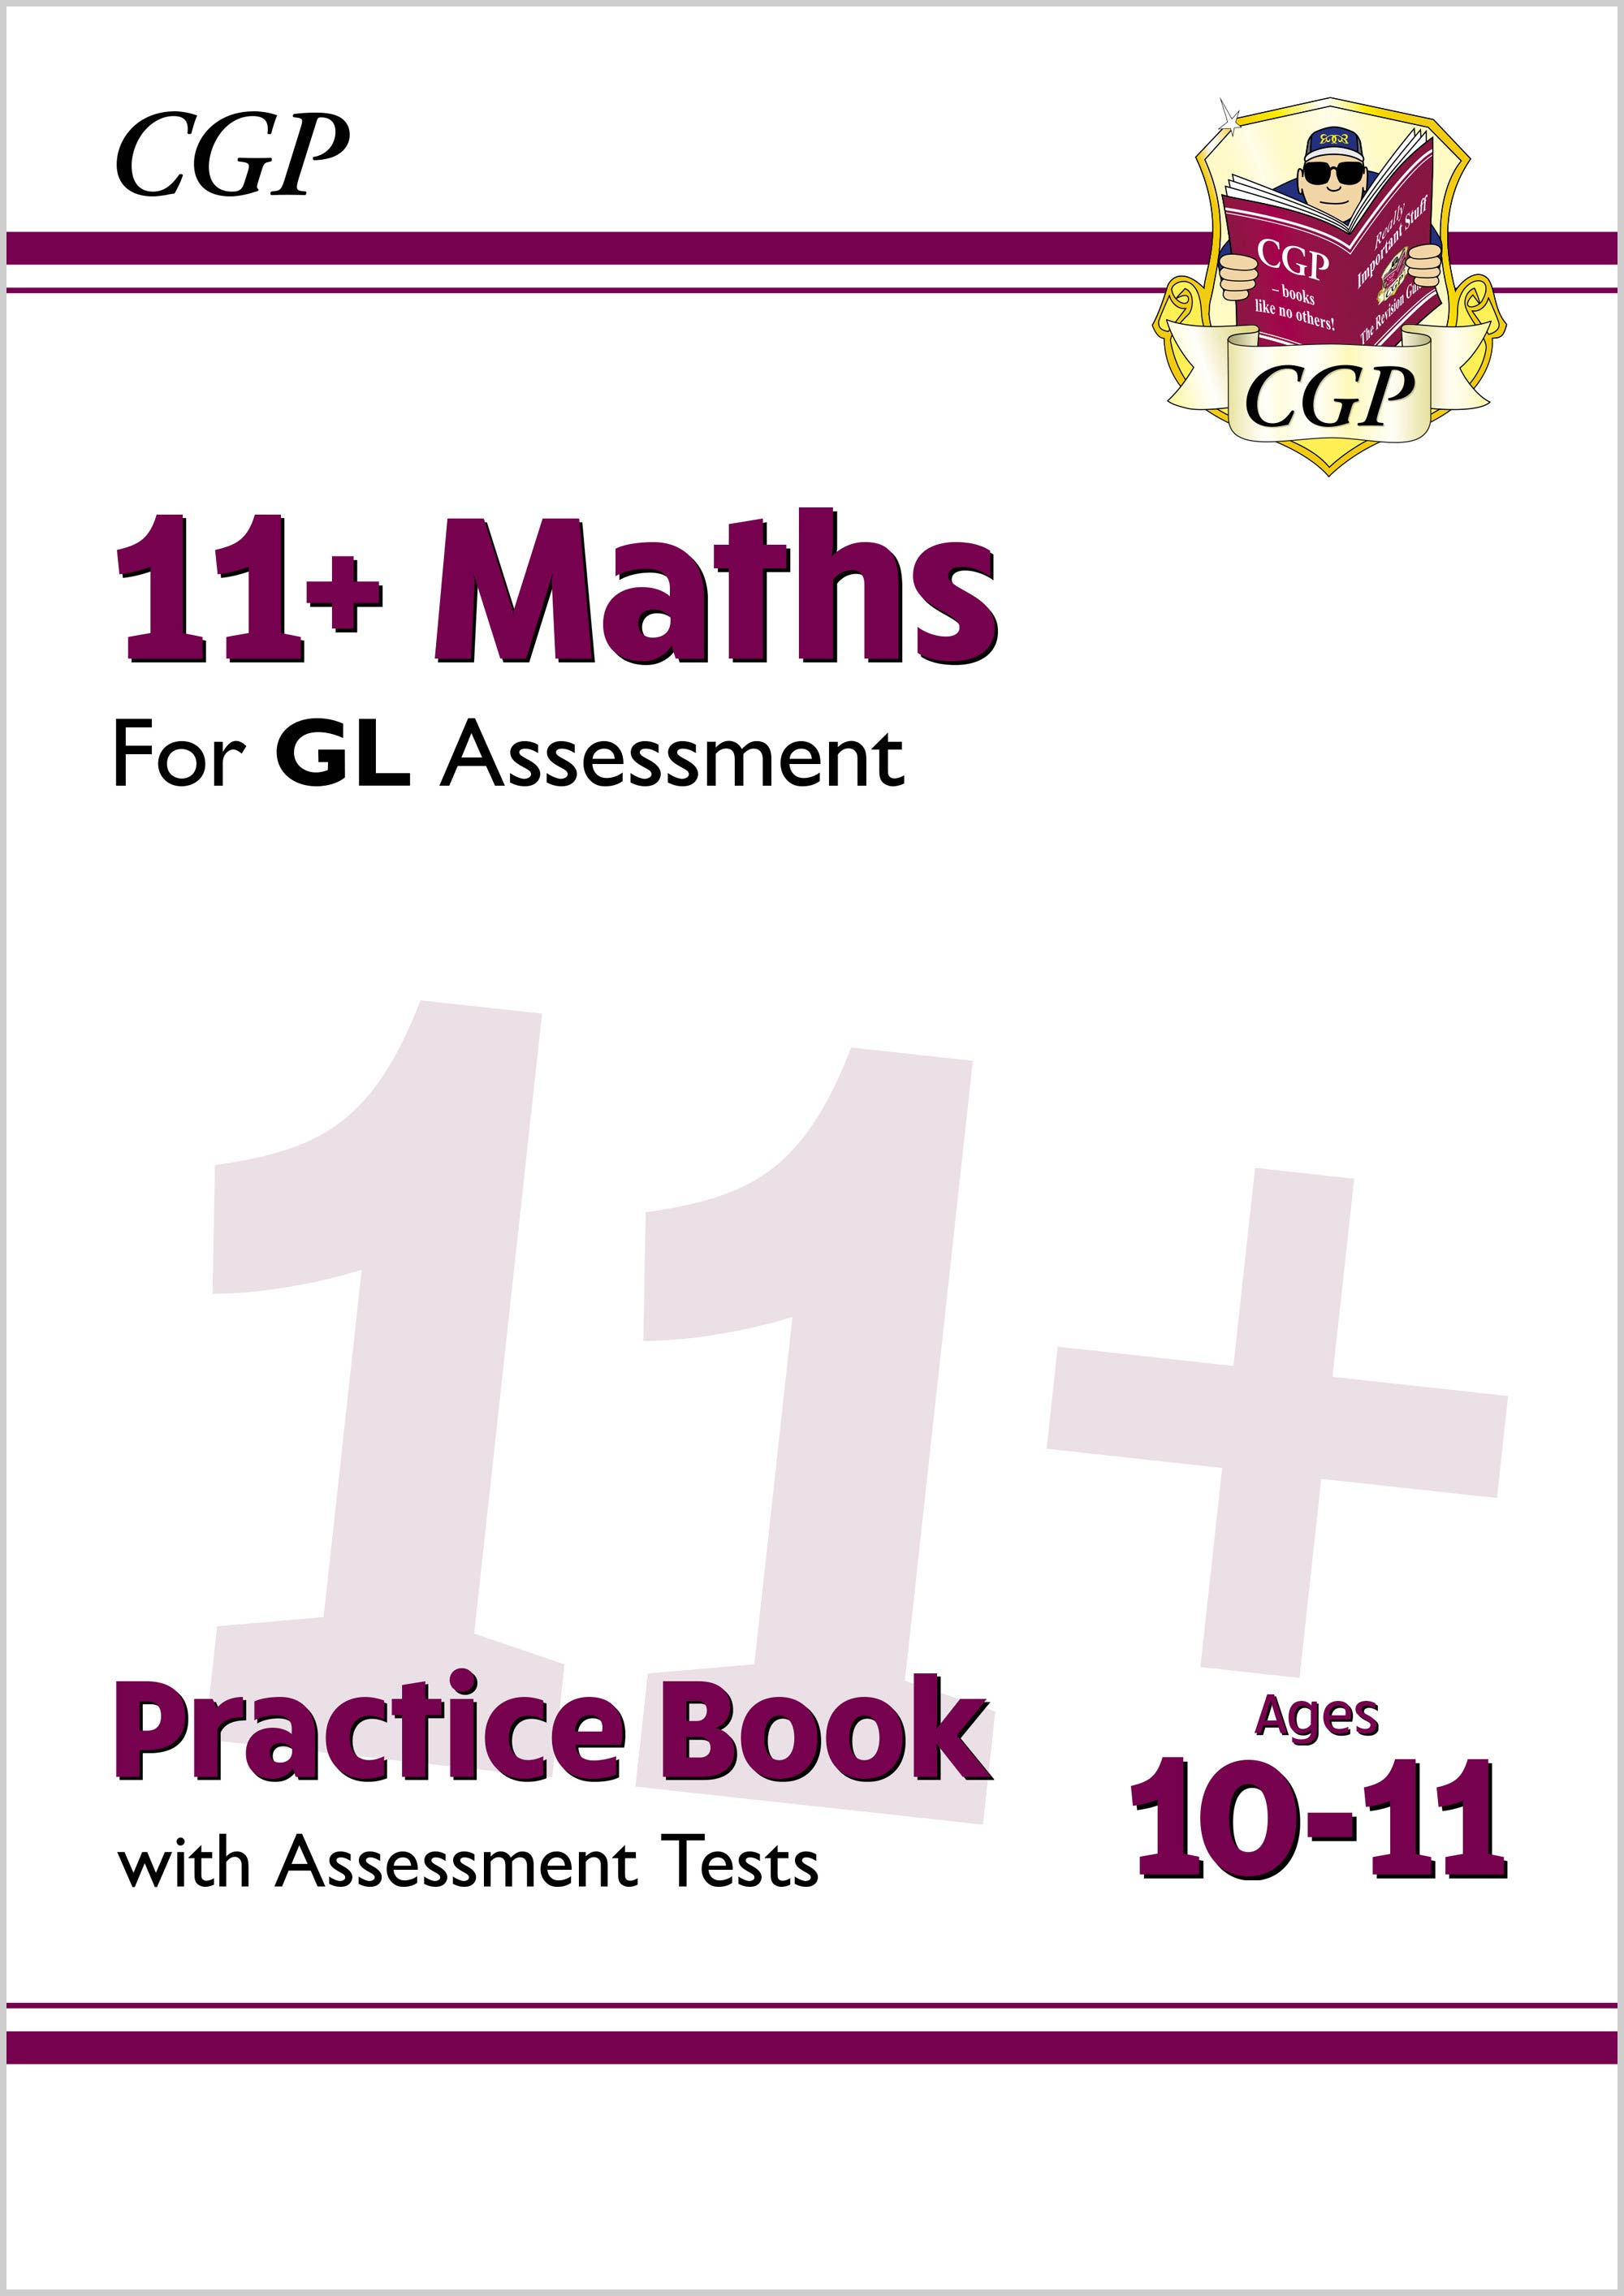 M6QE2DK - New 11+ GL Maths Practice Book & Assessment Tests - Ages 10-11 (with Online Edition)